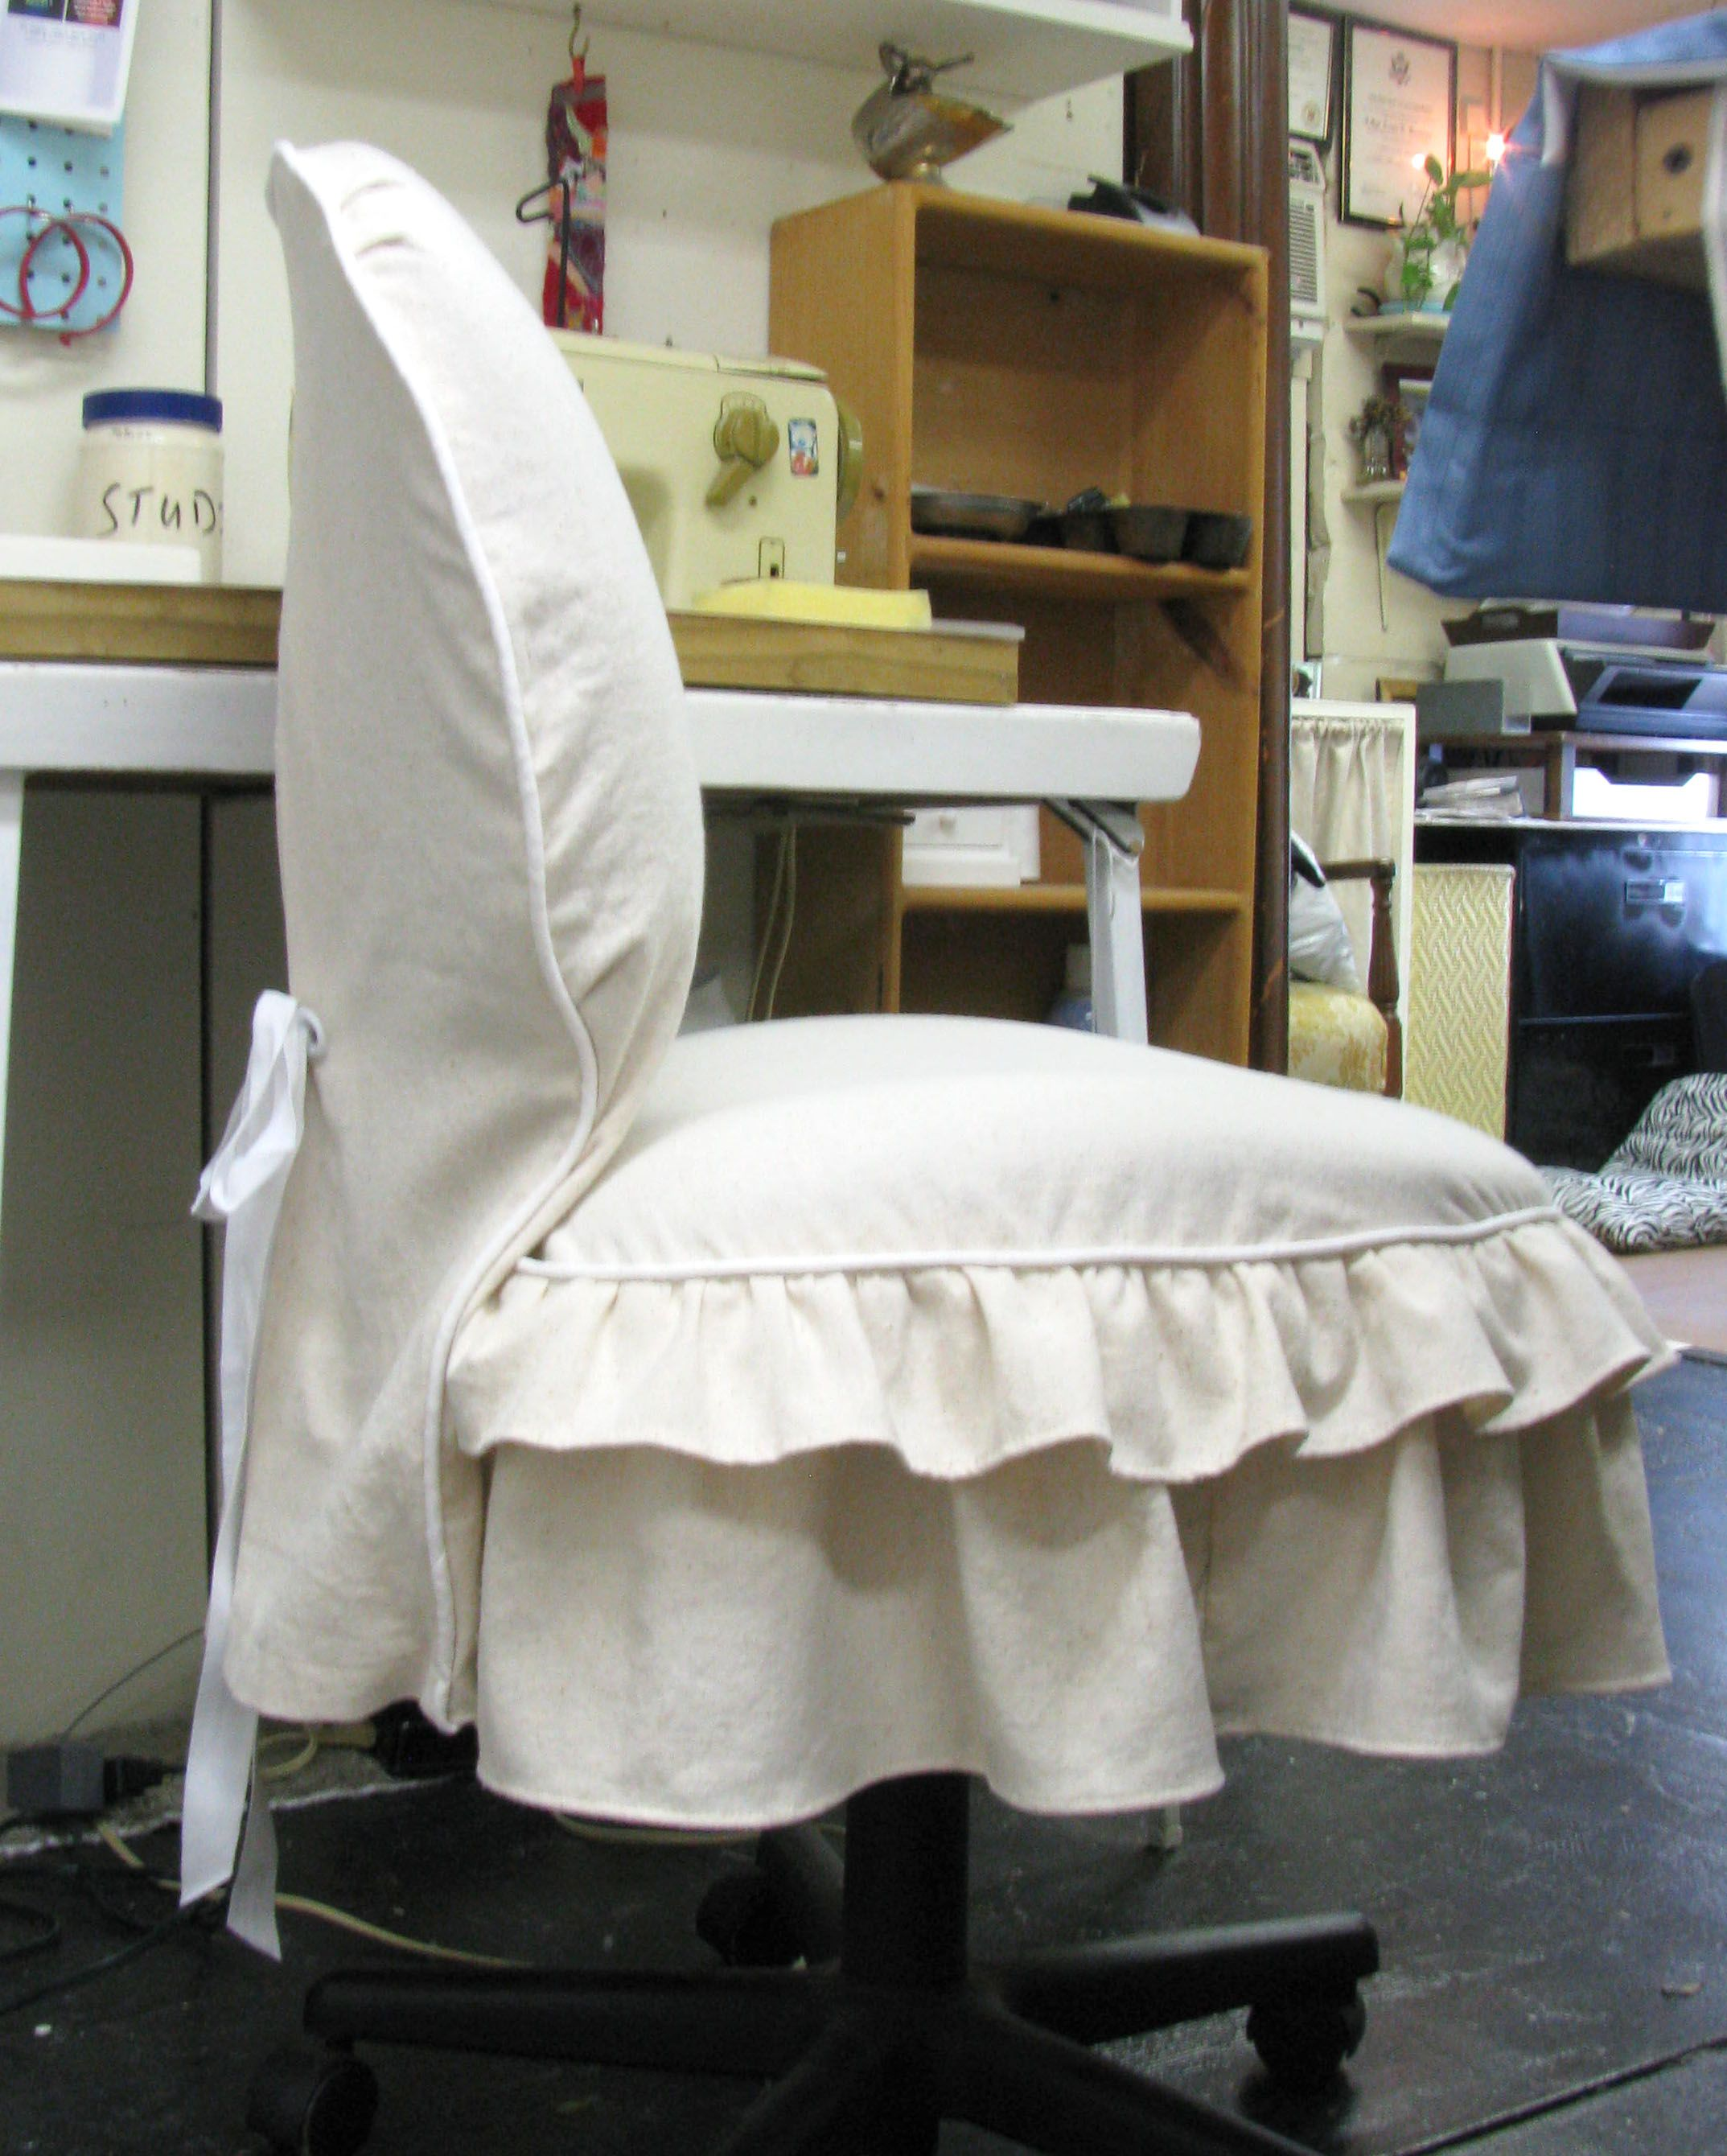 slipcovers for office chairs - Google Search | sewing ...